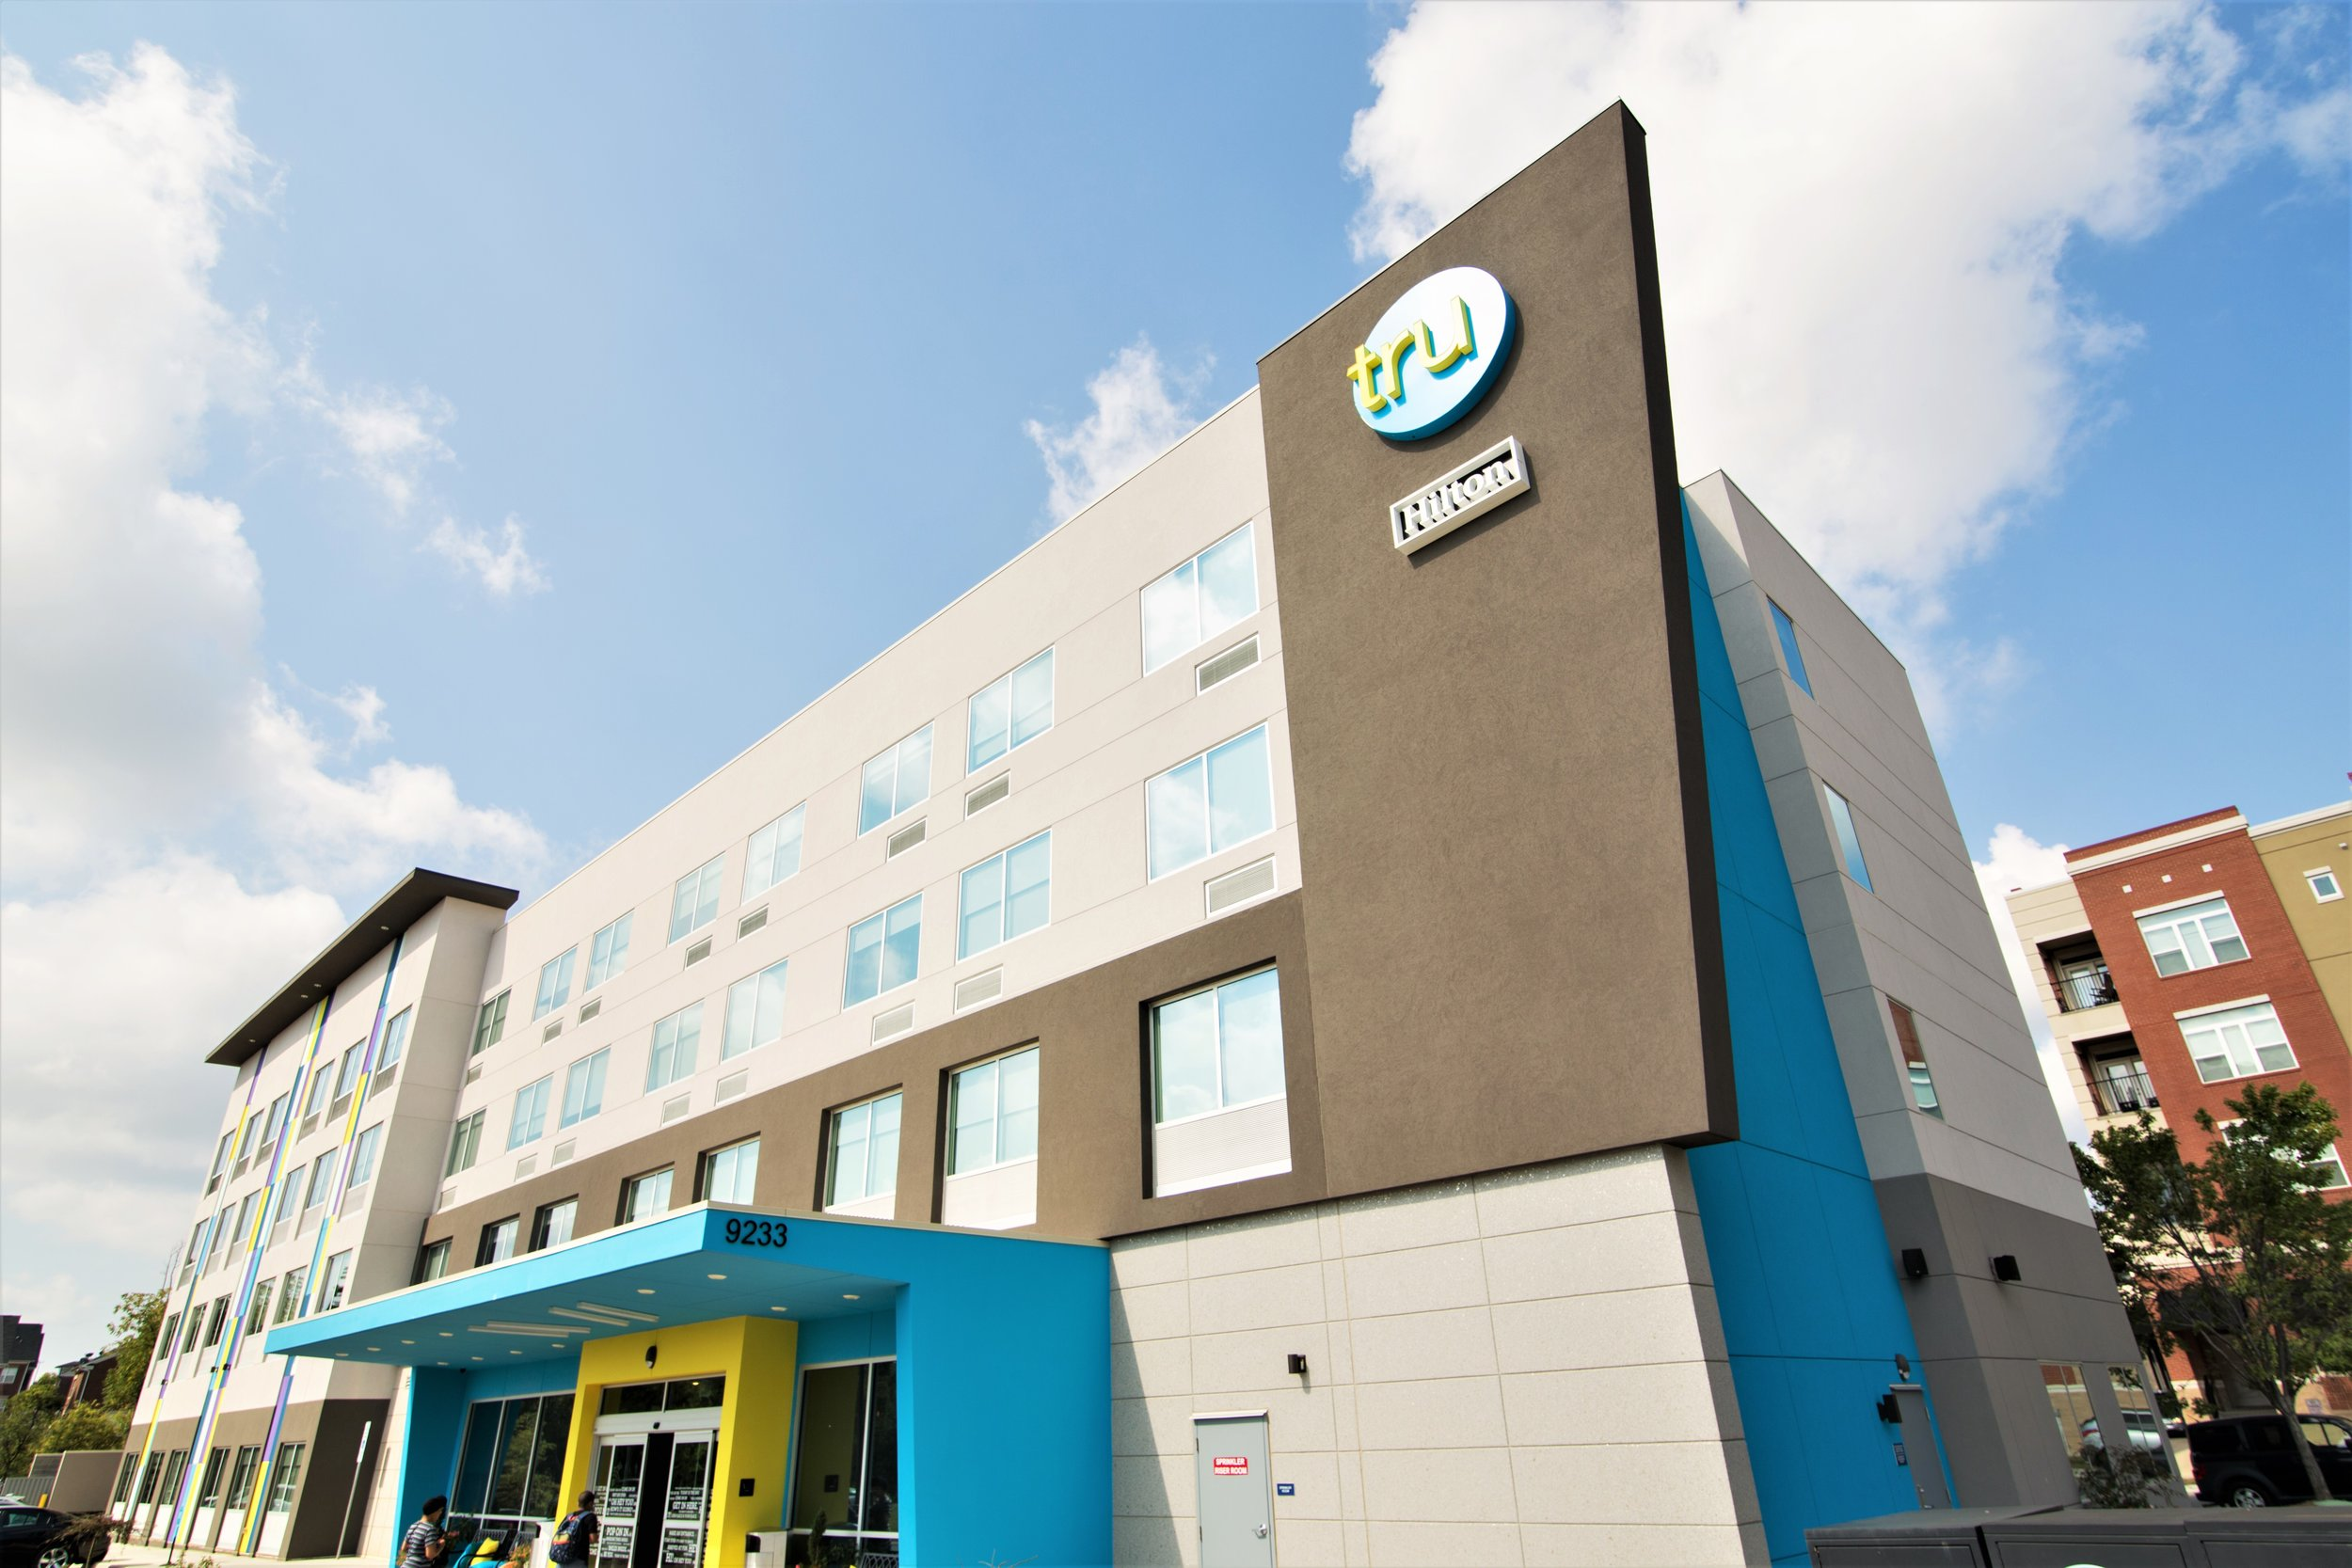 Tru by Hilton   Charlotte   Ayrsley hotel   is located in a business and neighborhood district near downtown Charlotte and area attractions.